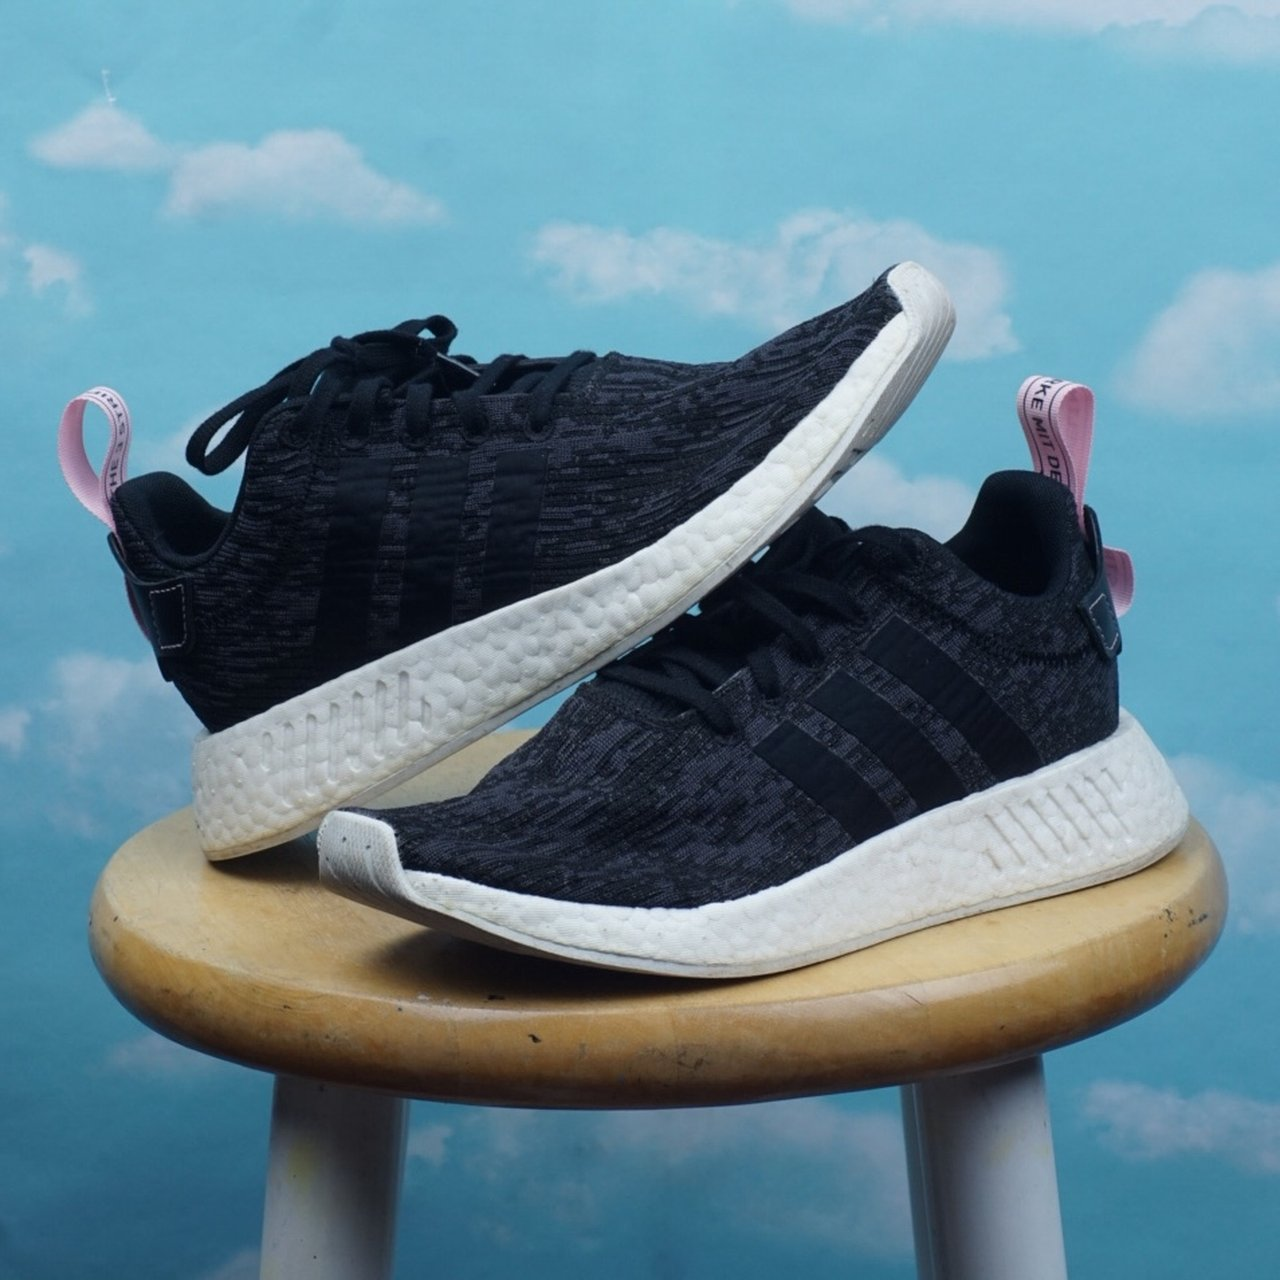 9cc019ff9 Adidas NMD r2 Core Black Pink sneakers ! Super dope classic - Depop